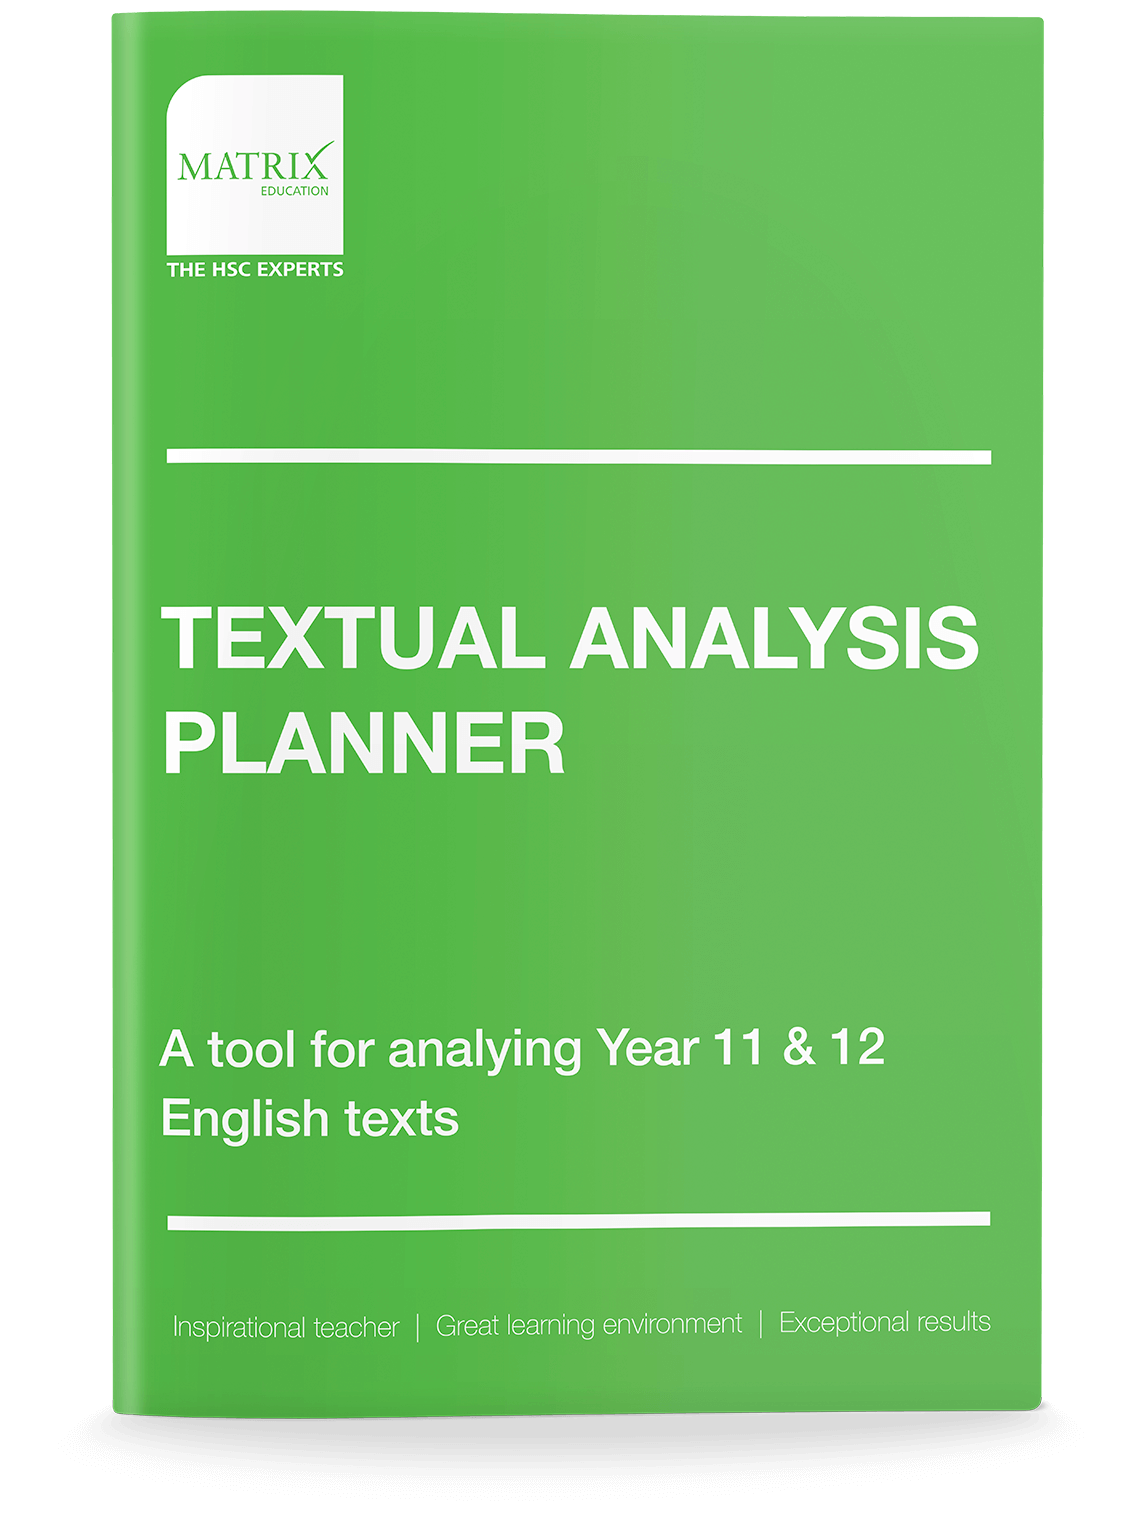 Download Your FREE Textual Analysis Planner